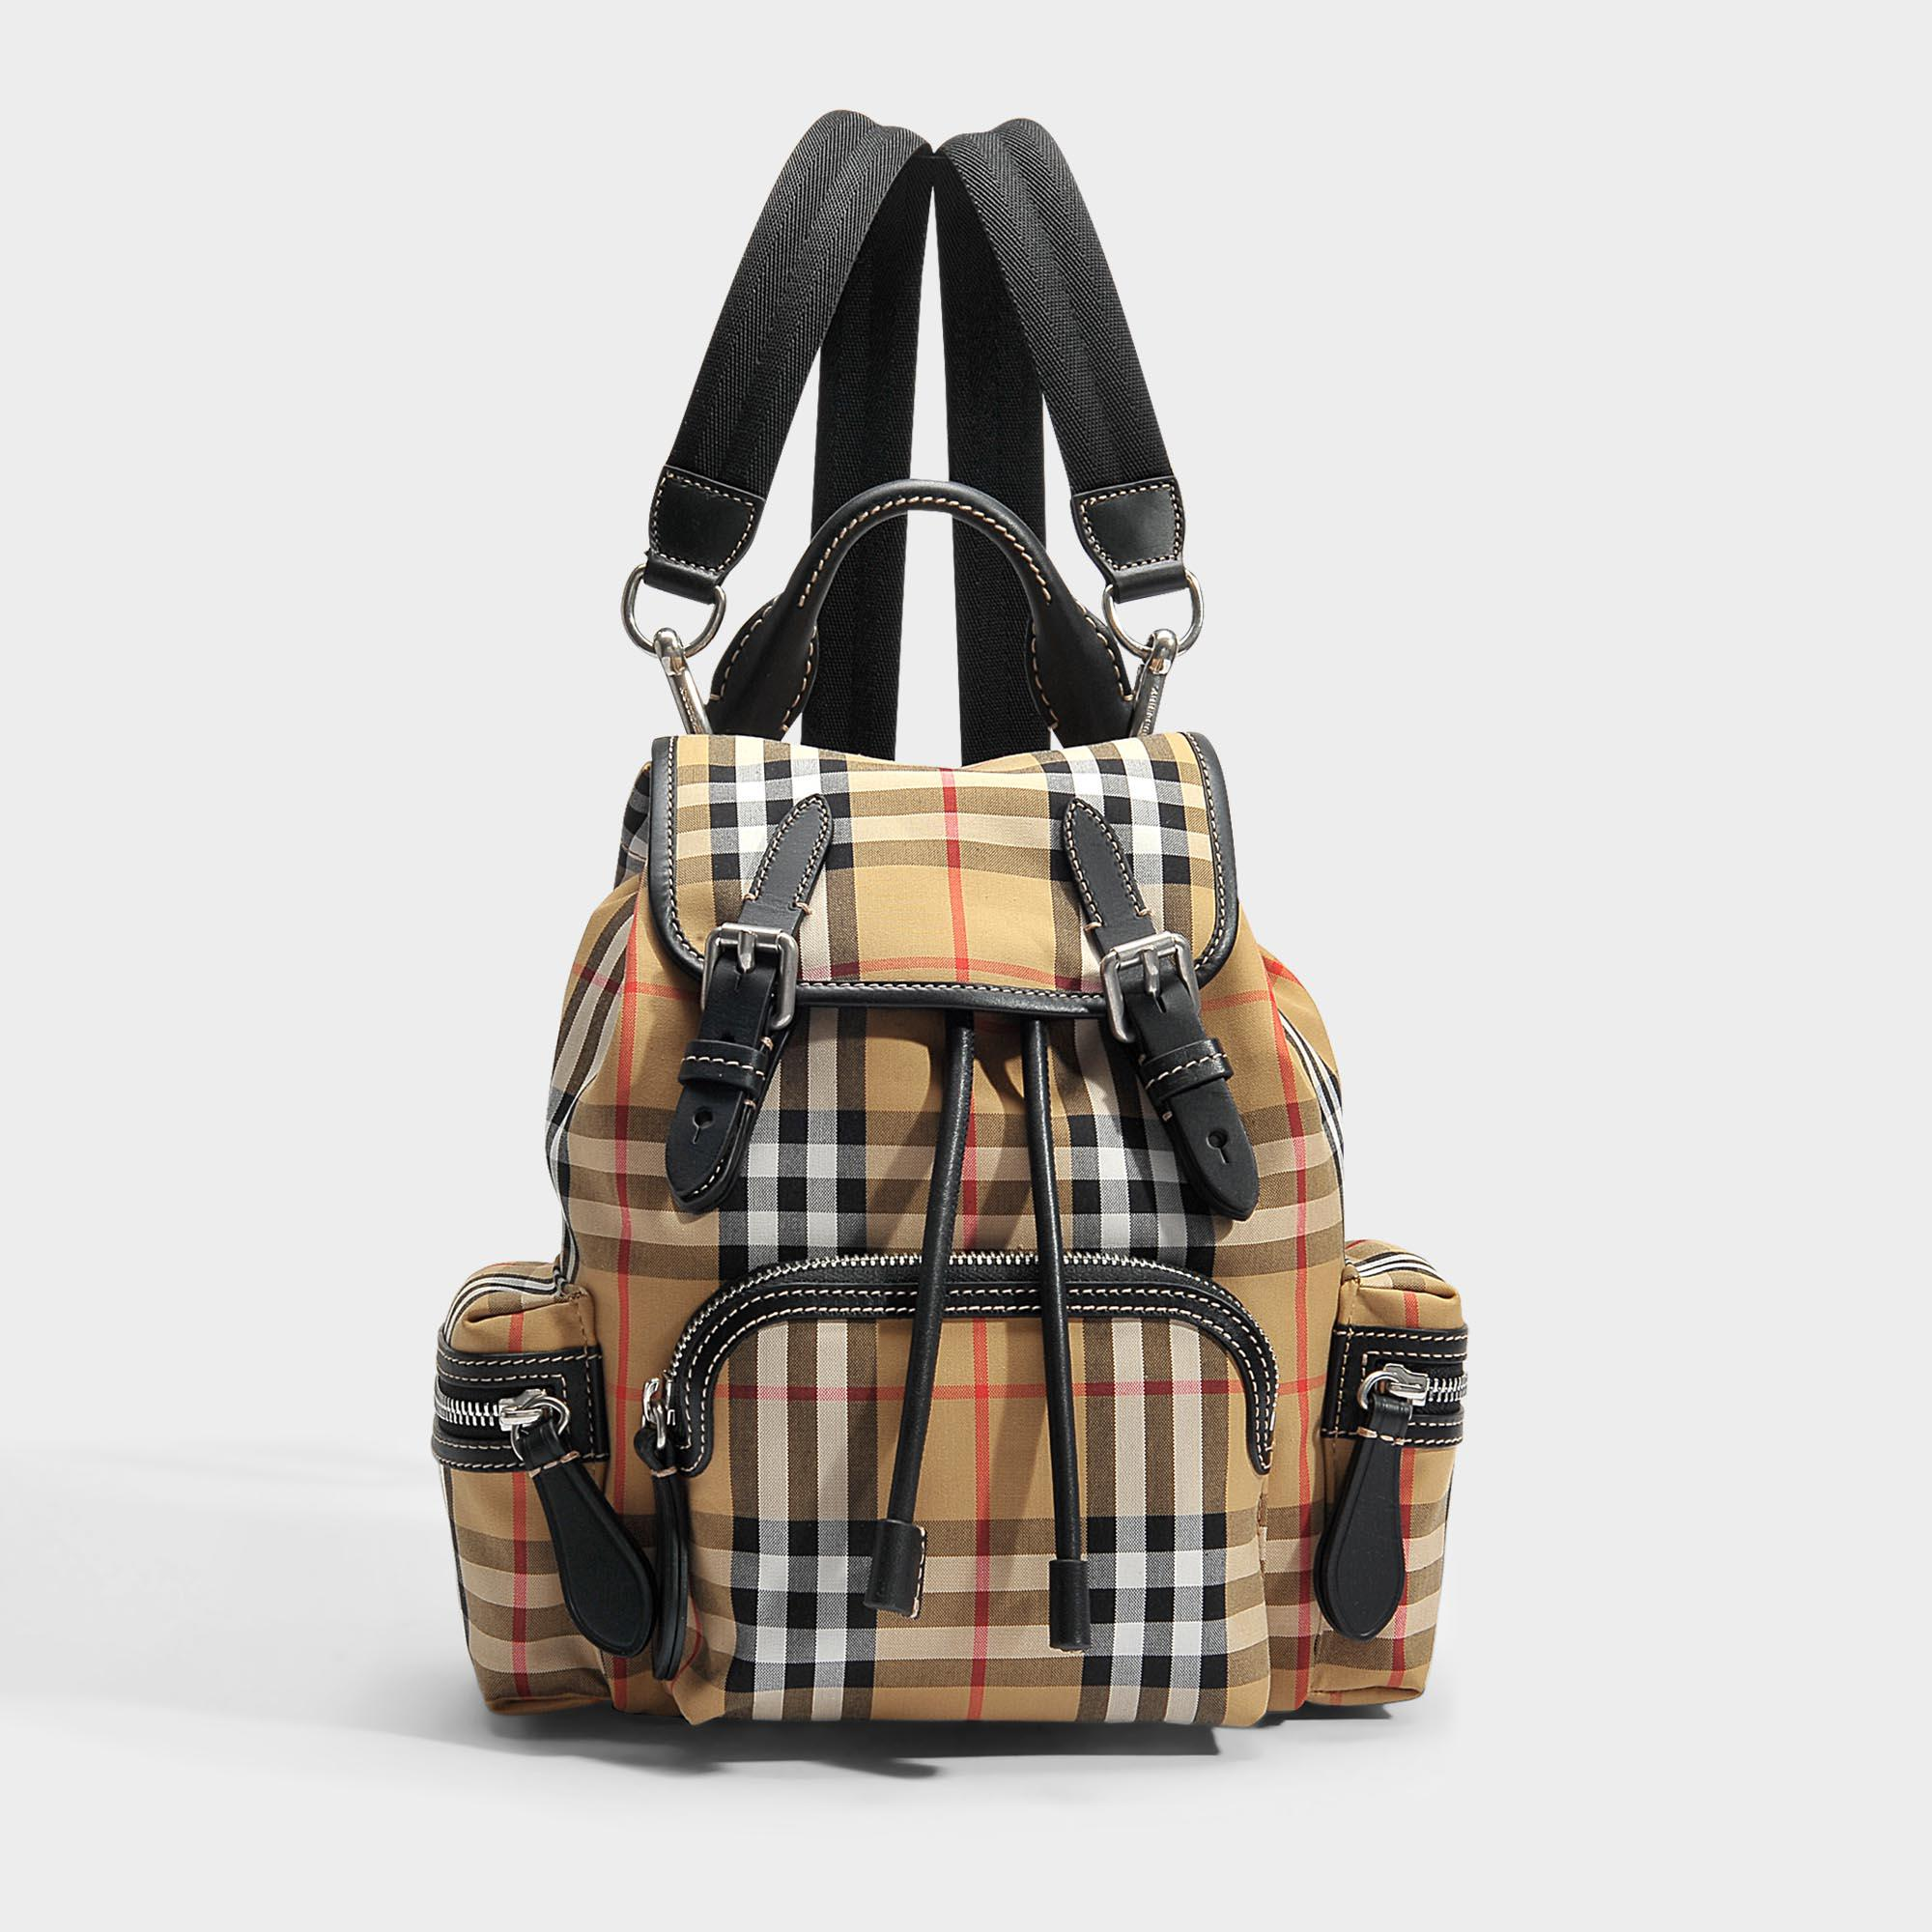 Small Vintage Check Disrupted Rucksack Backpack in Chalk White Canvas Burberry WTWFo